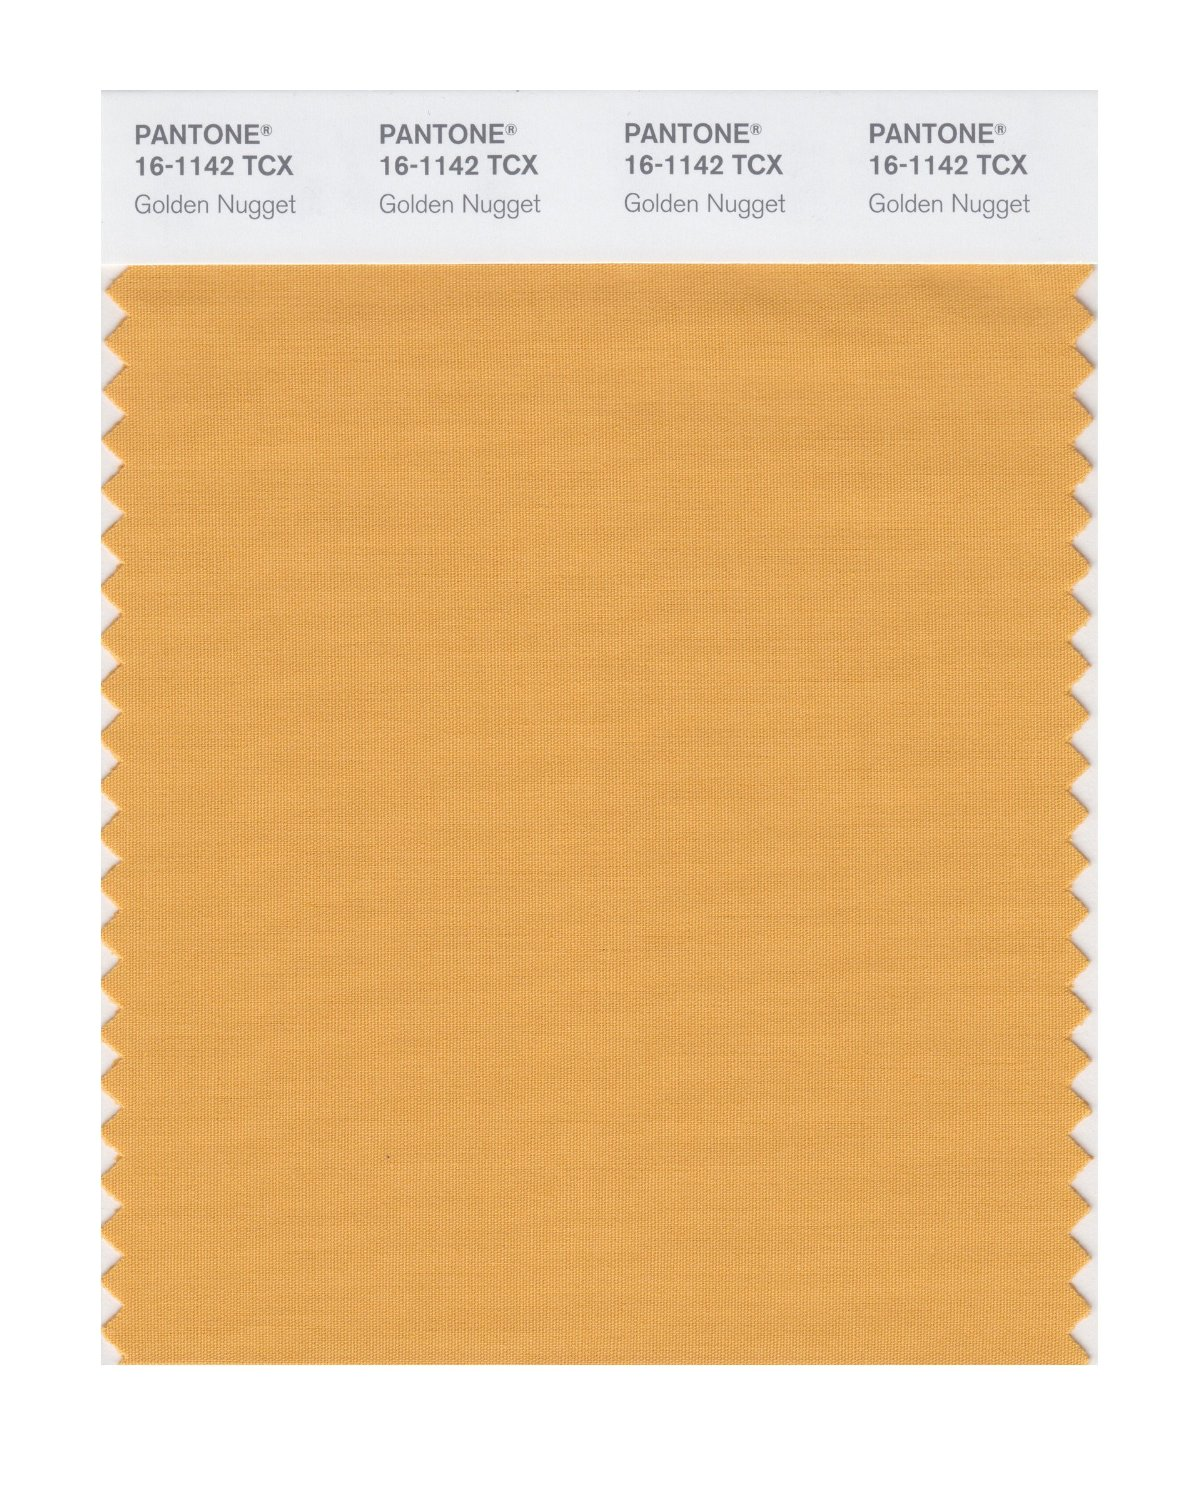 Pantone Smart Swatch 16-1142 Golden Nugget